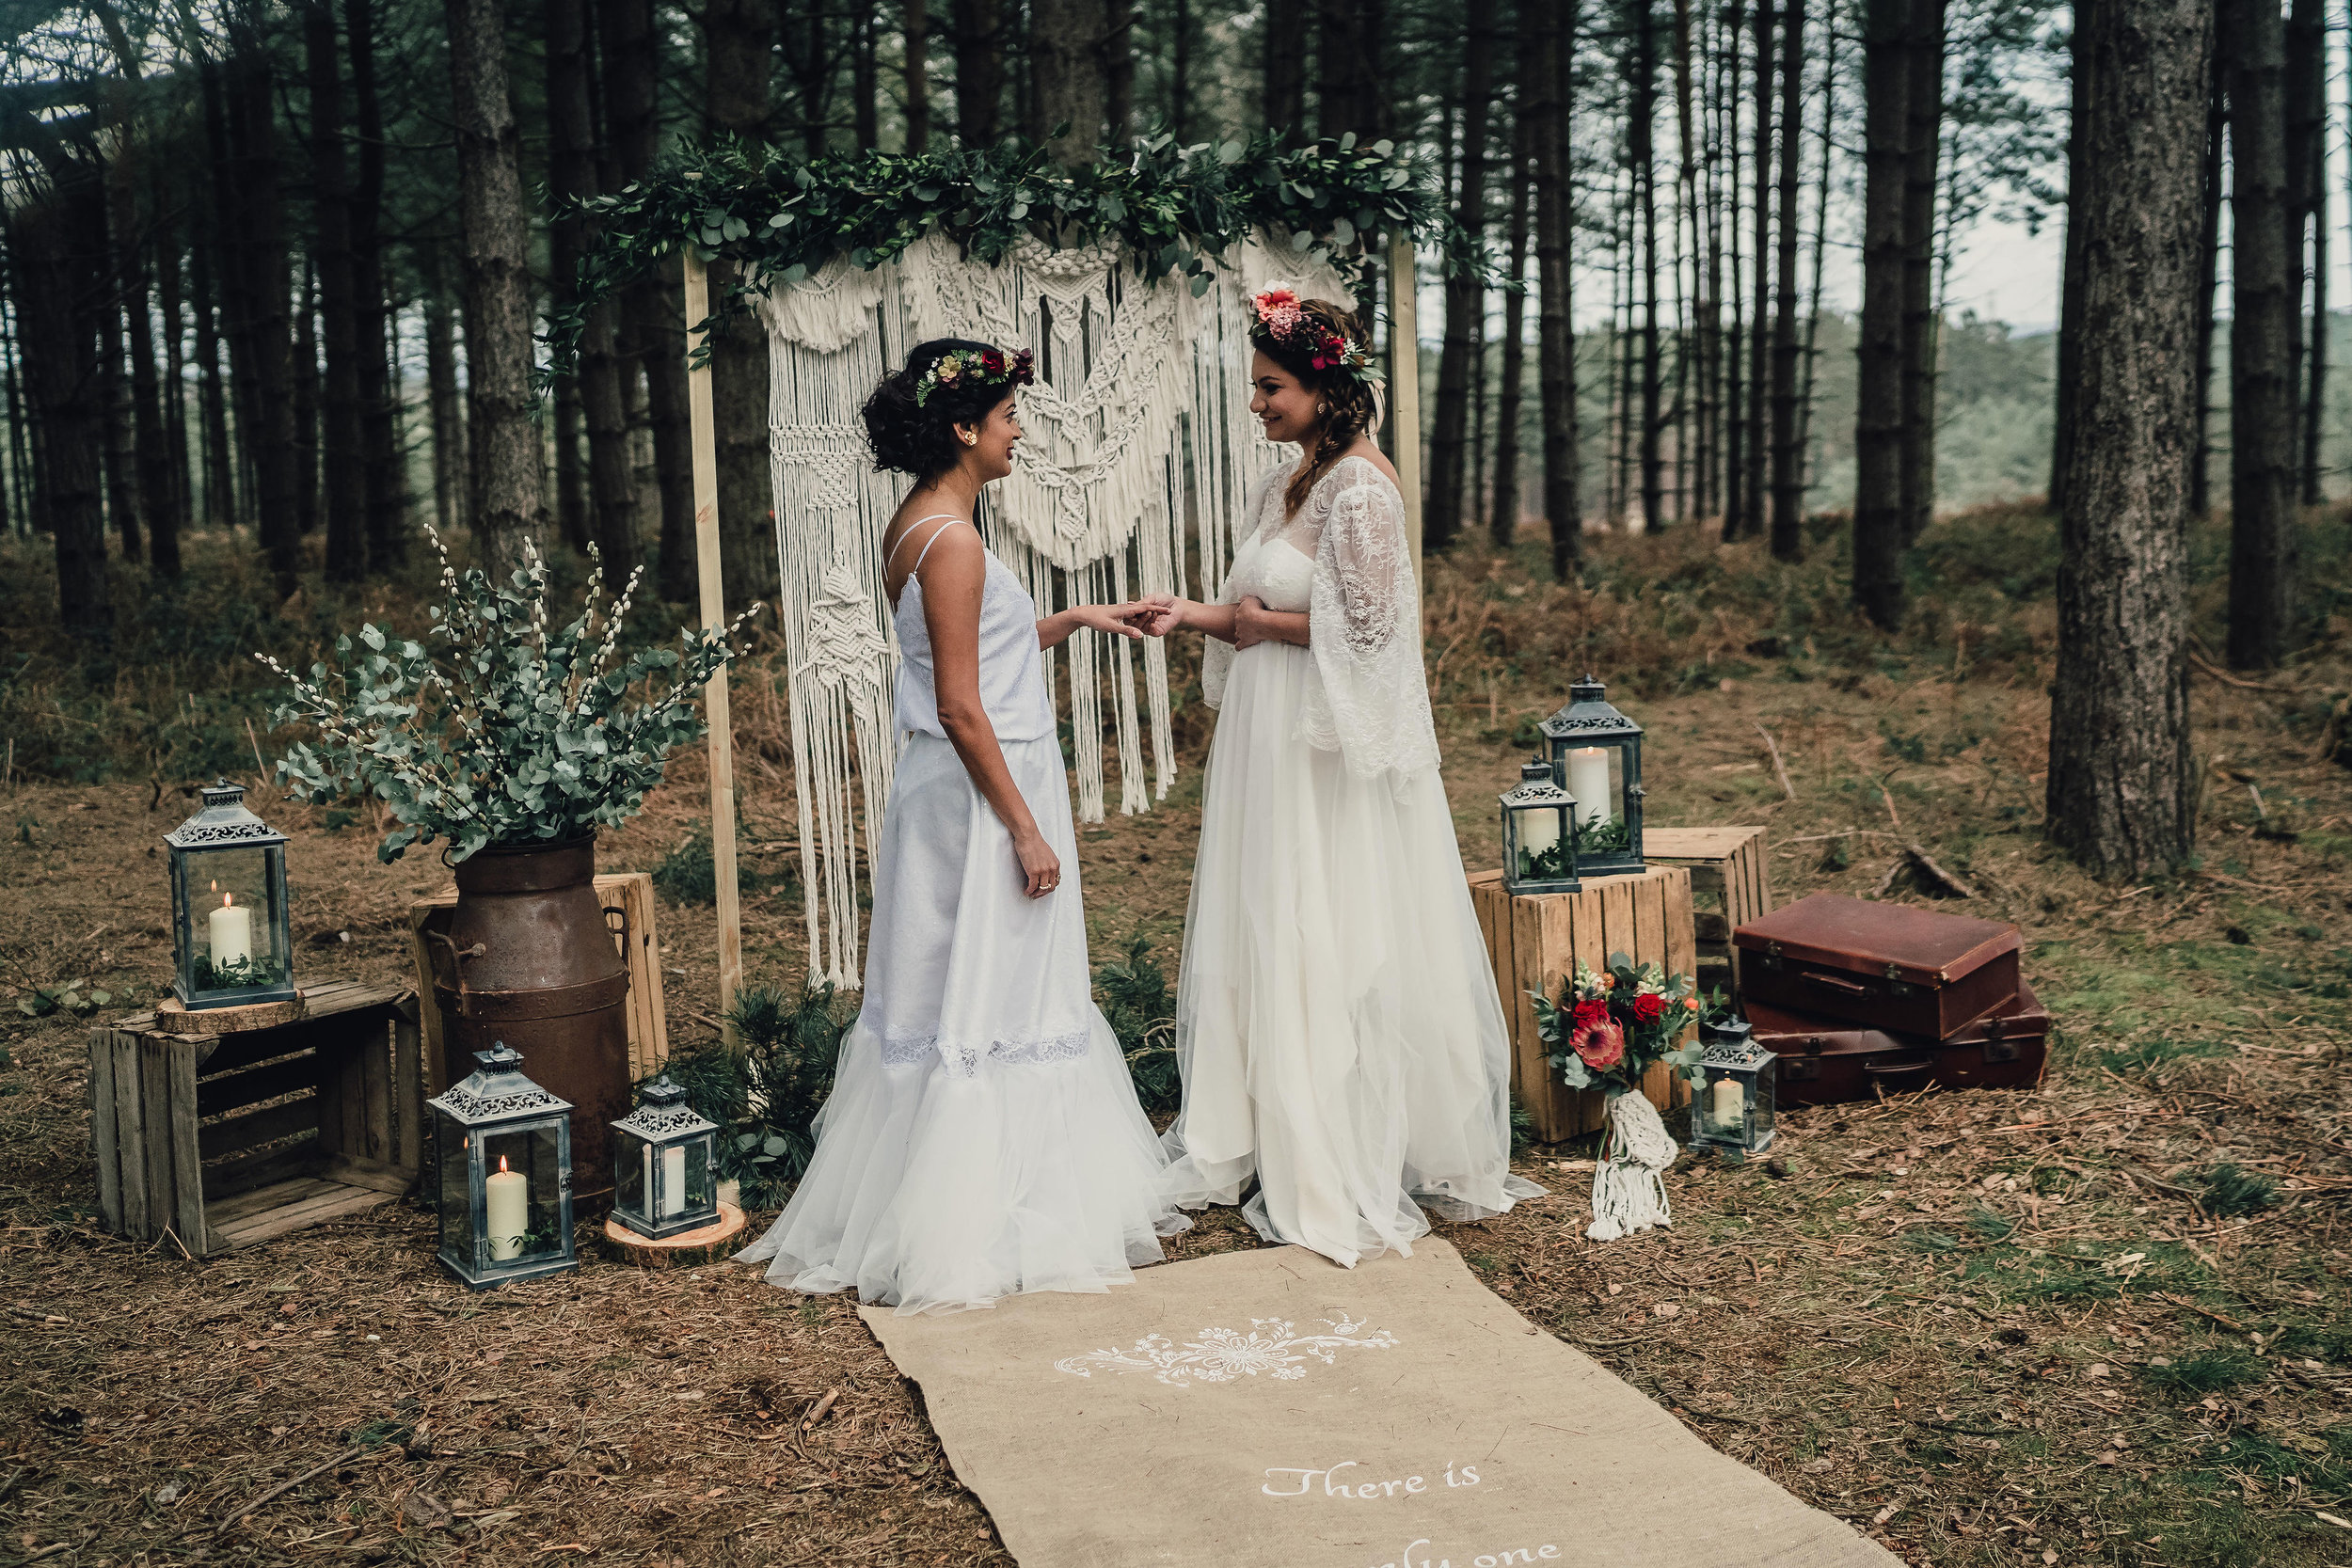 boho-elopement-cannock-chase-leeshawilliamsphotography-136.jpg